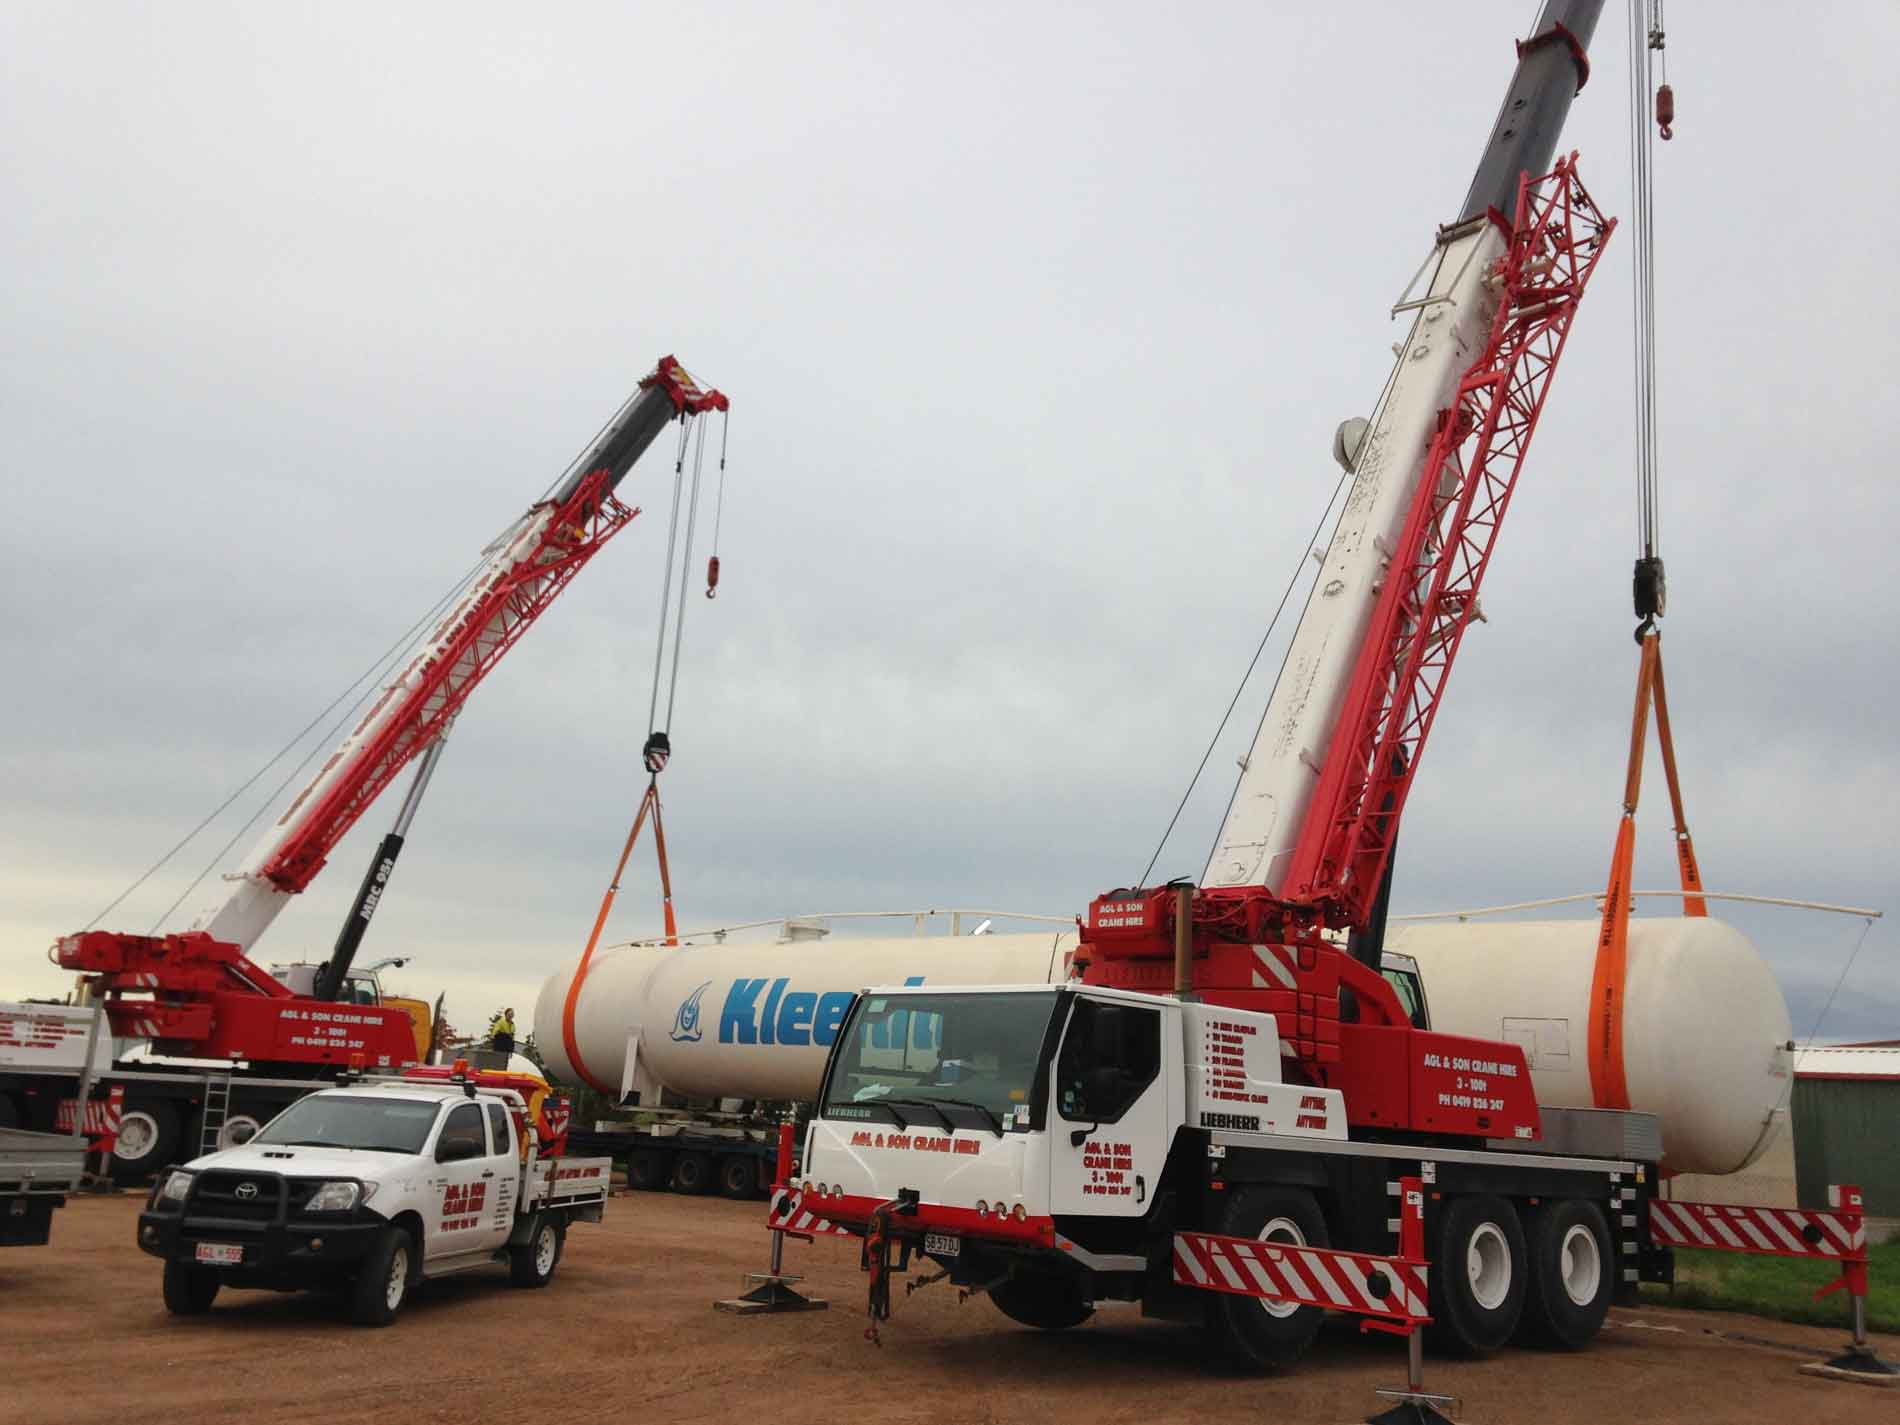 Cranes available with our wet crane hire services in Adelaide